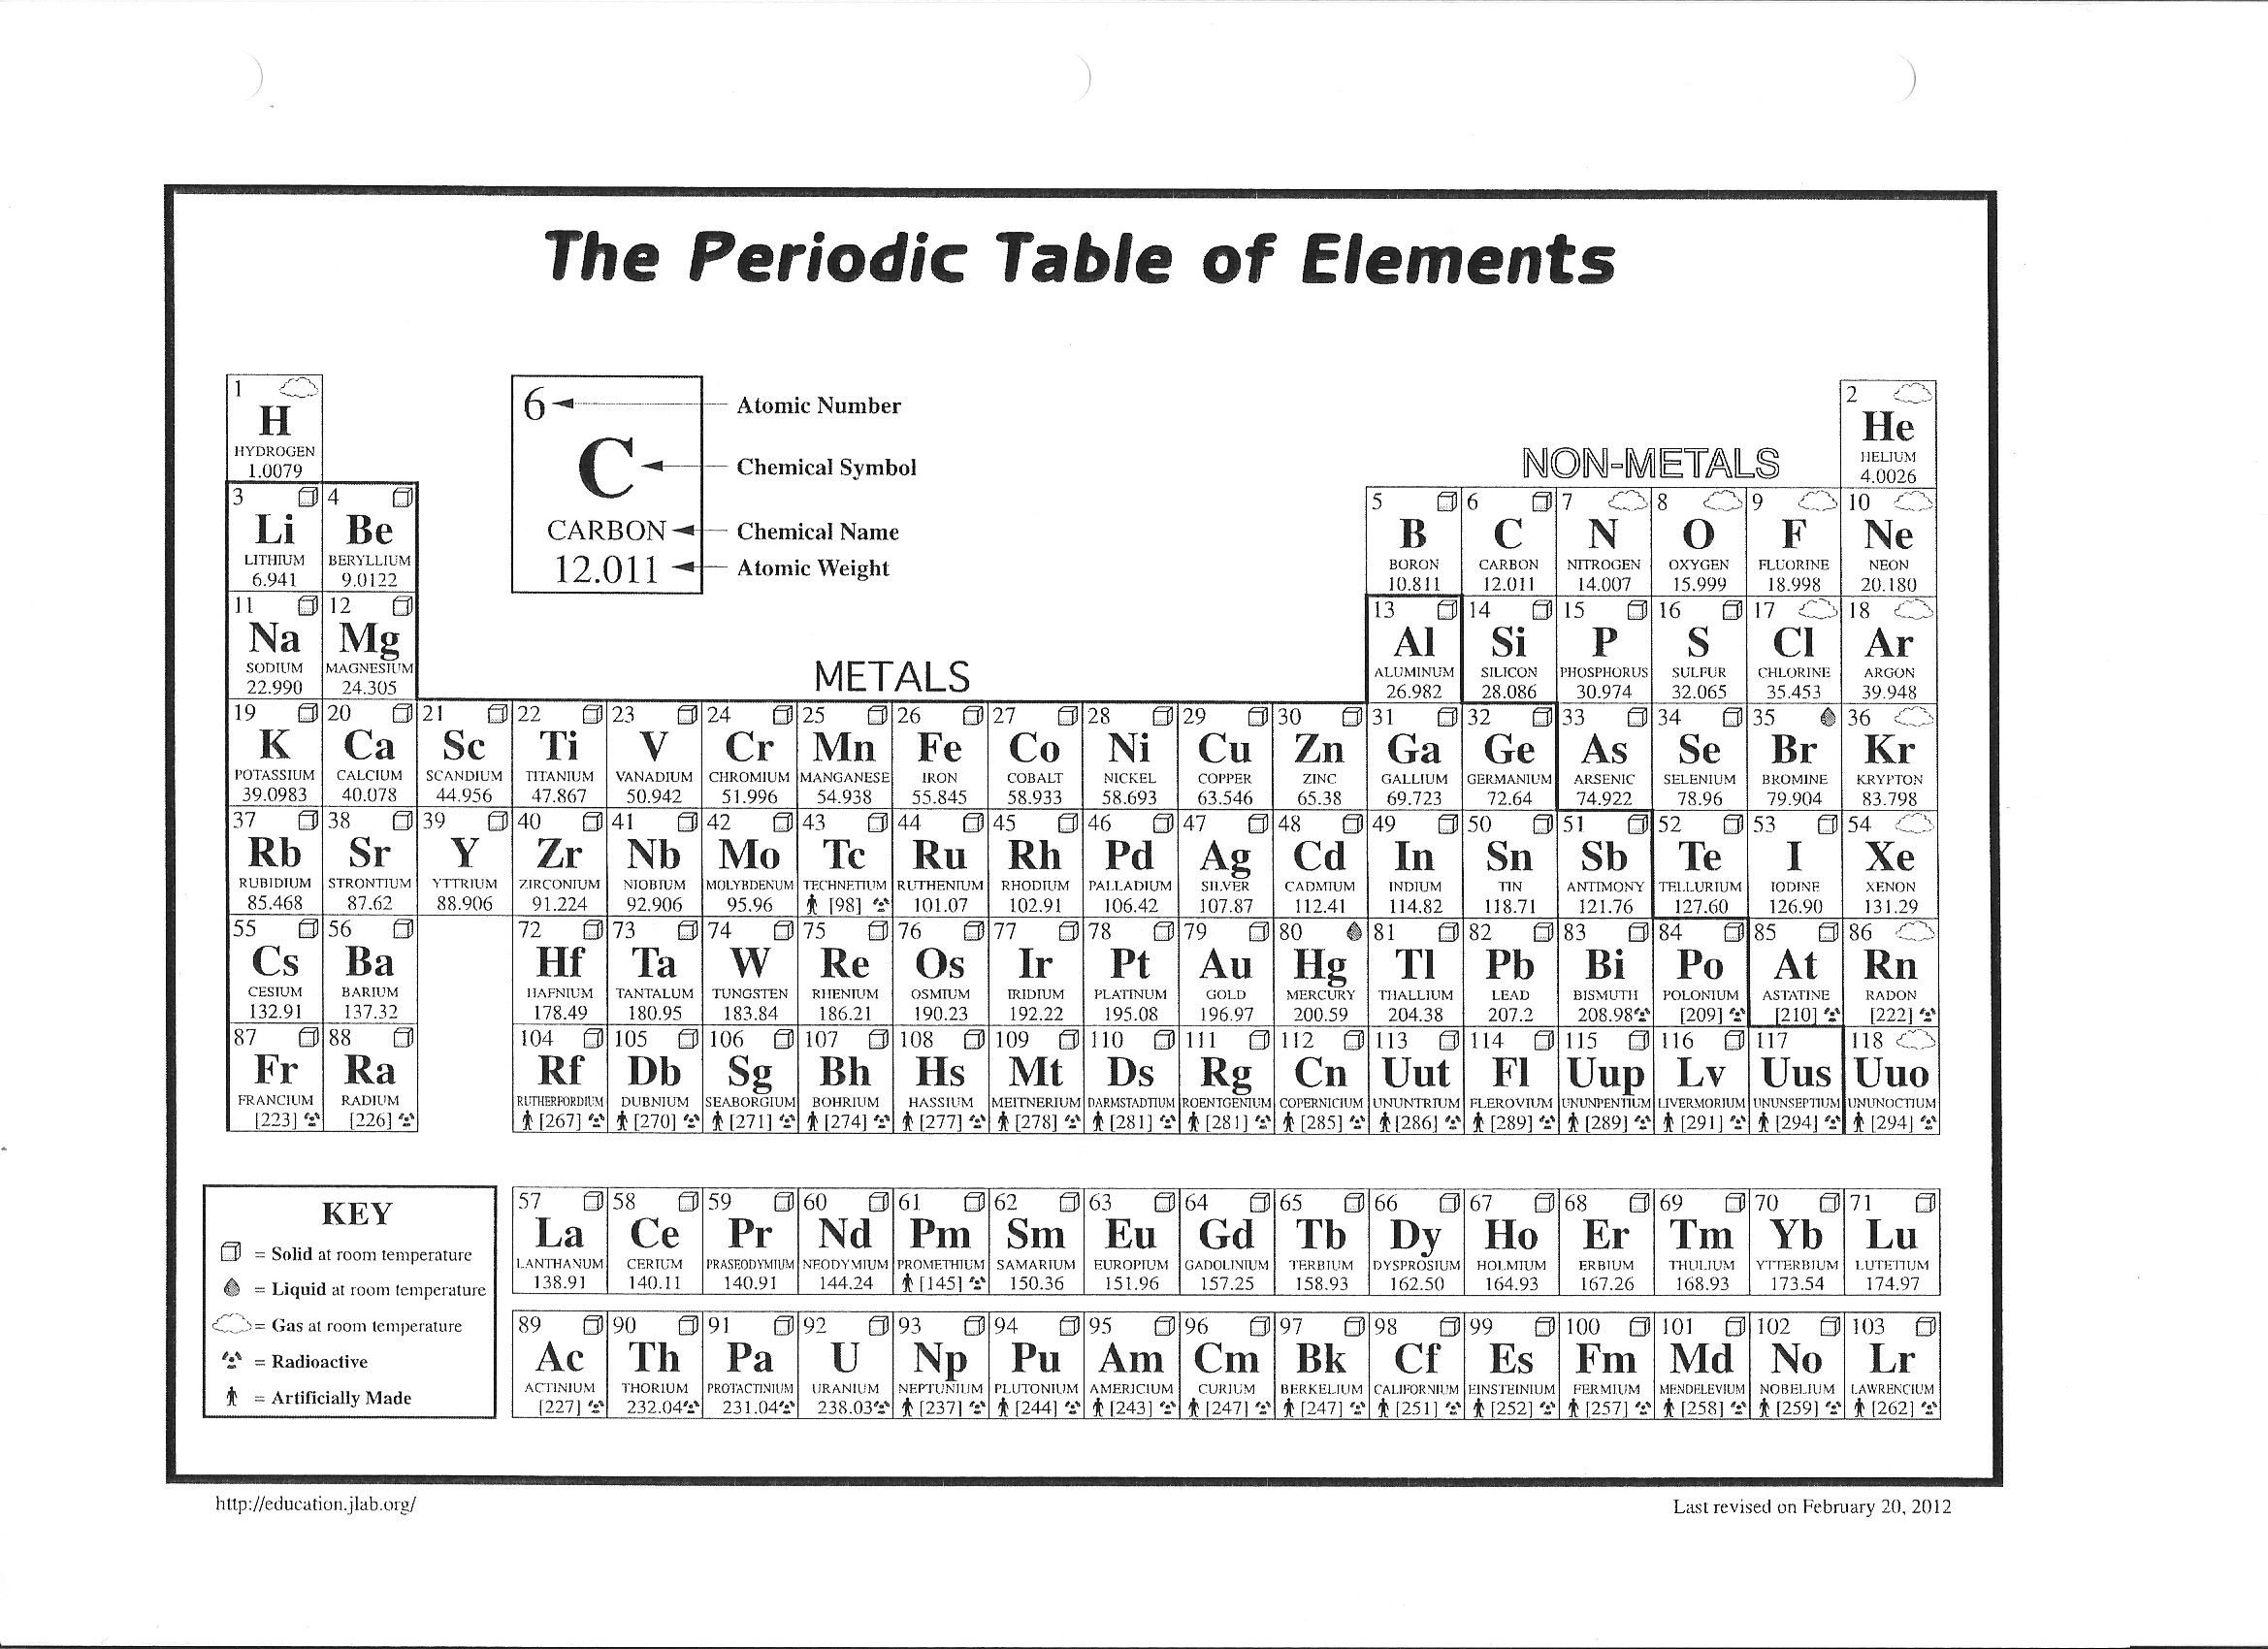 Periodic Table Worksheet for Kids Blank Periodic Table 2 338—1 700 Pixels